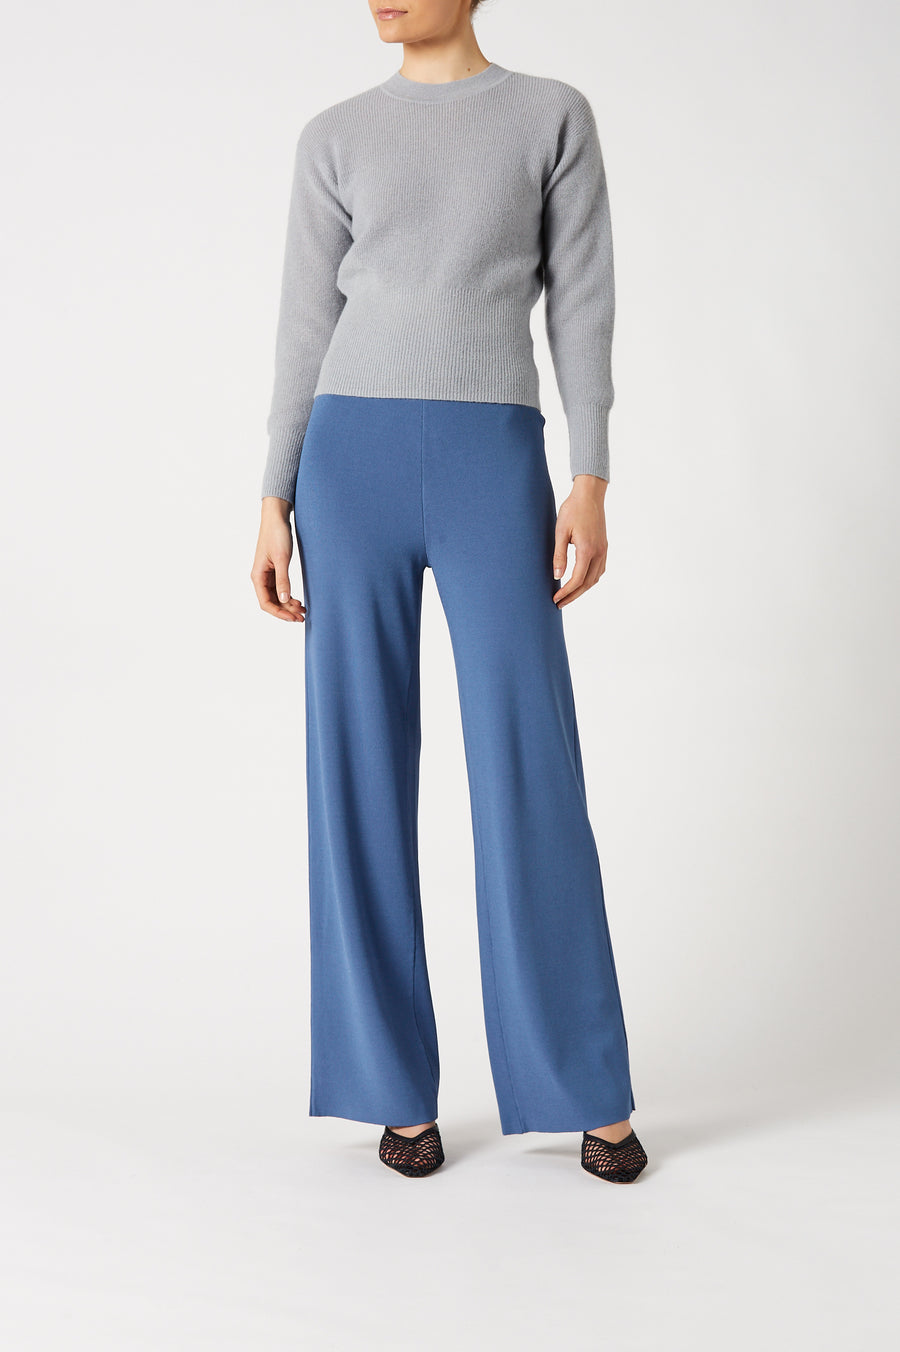 Featuring high waist with thin elasticated waistband and wide leg, the High Waist Knit Trouser exudes chic transitional styling.